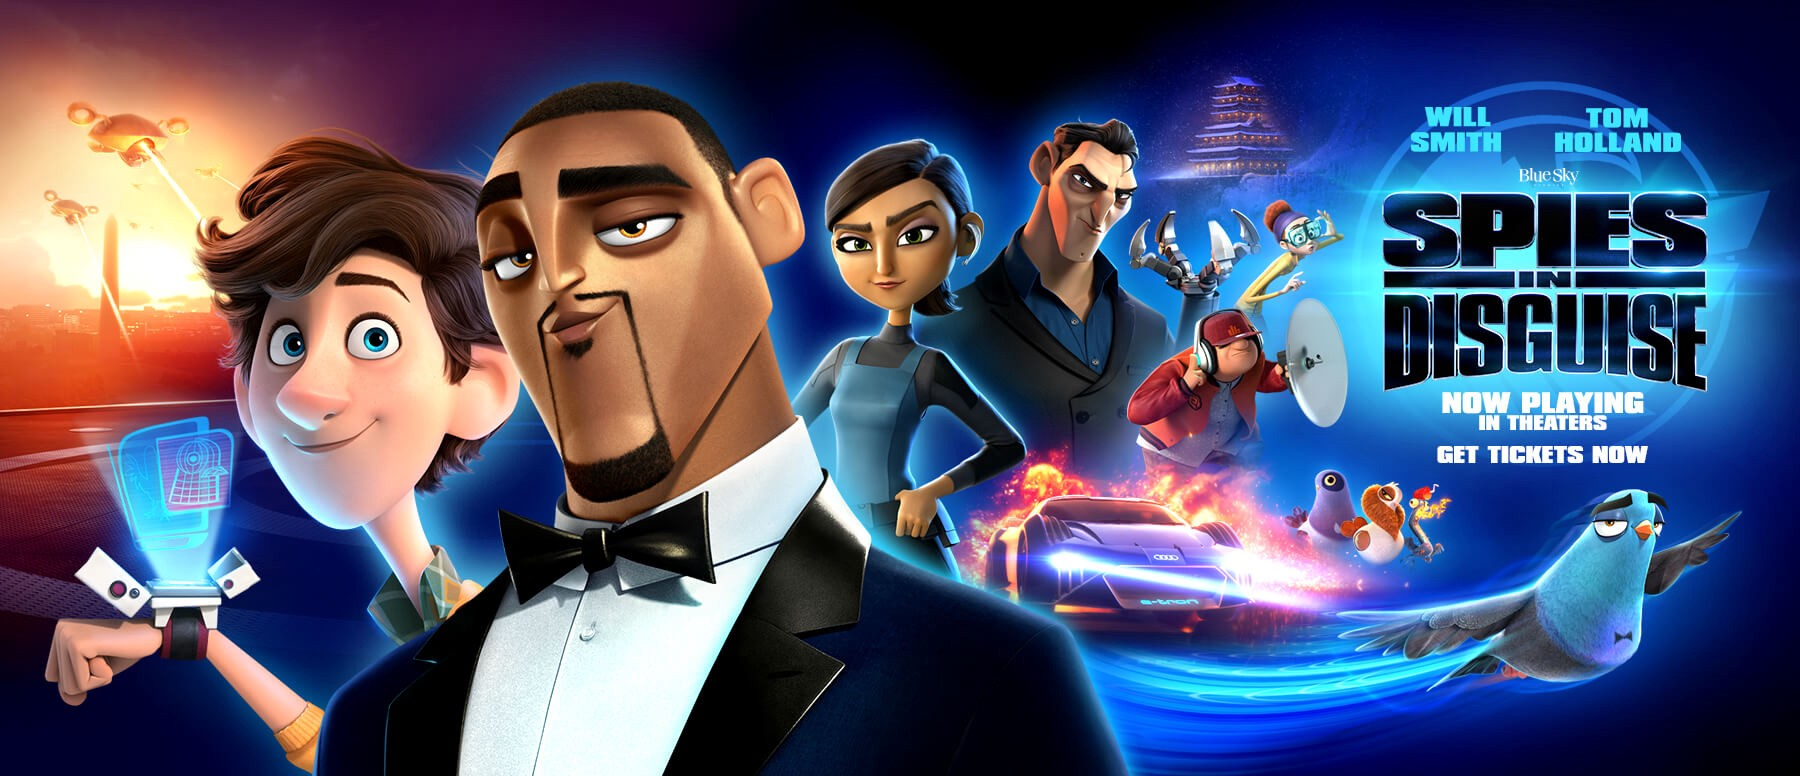 Spies In Disguise 2019 Full Streaming Download By Memem Becex Medium